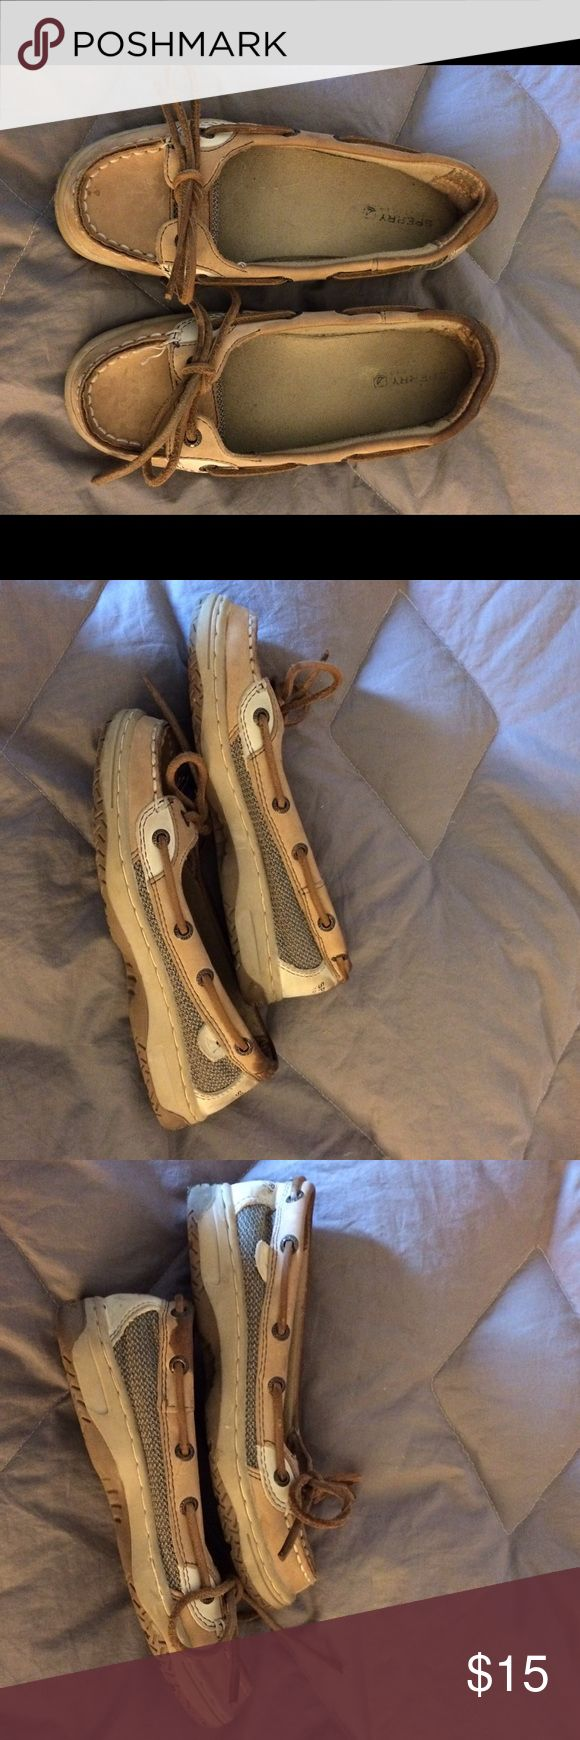 """Girls Sperry """"Angelfish"""" Top-Sider Boat Shoes Cute Girls Sperry Top-Siders with the Angelfish tag. These are well loved and do have some staining at the backs which is visible in the photos. Smoke free home. Sperry Top-Sider Shoes"""